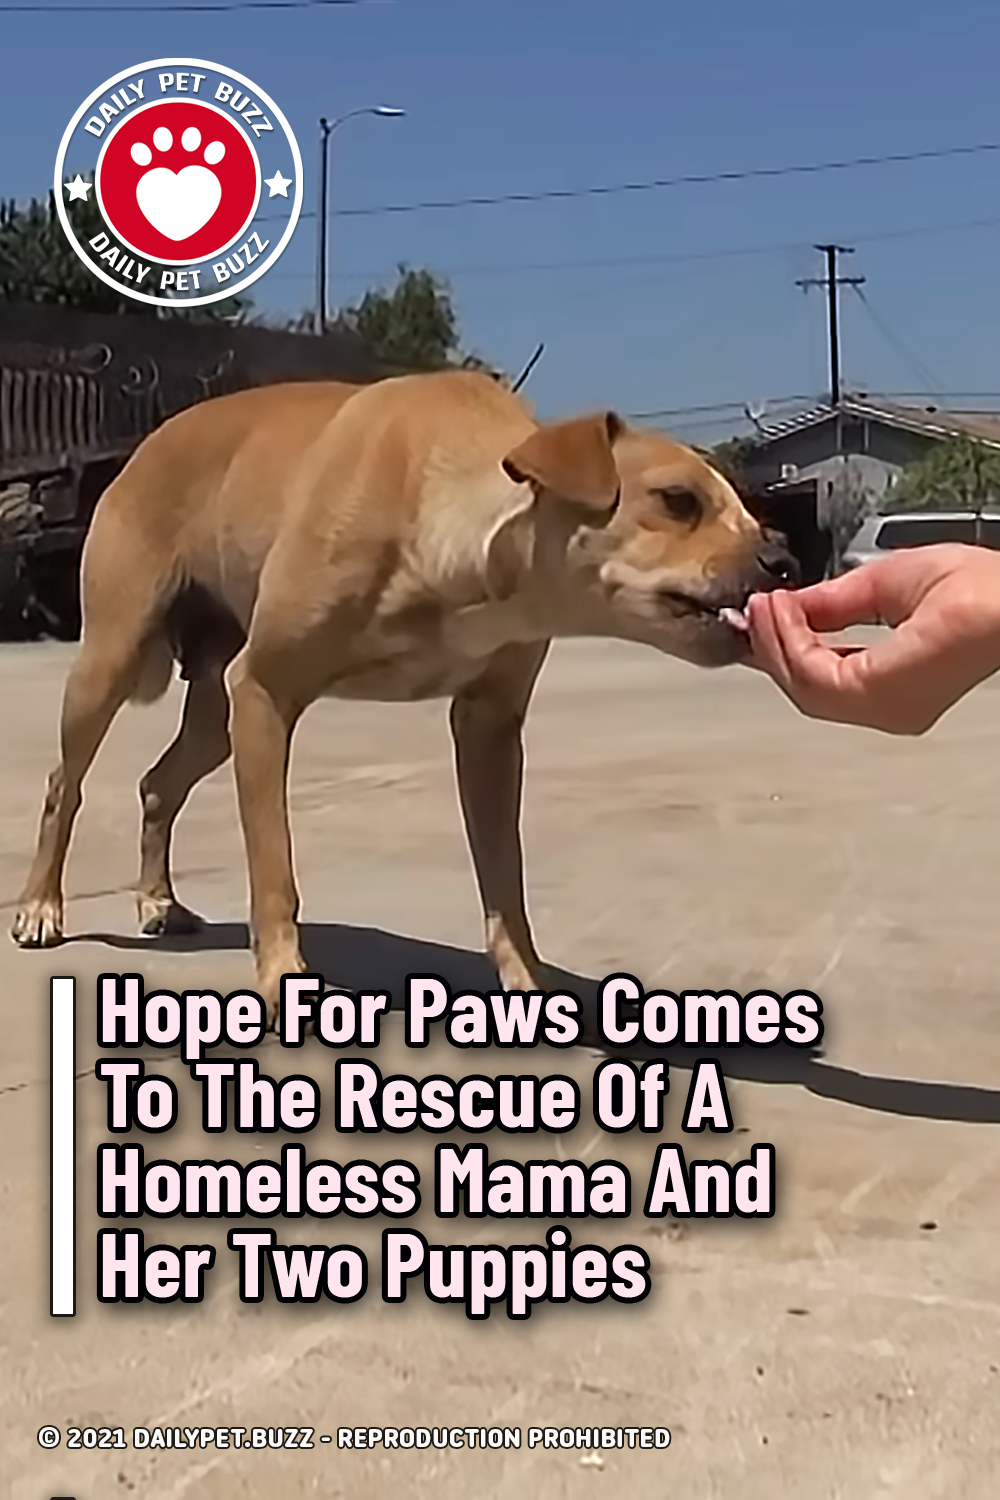 Hope For Paws Comes To The Rescue Of A Homeless Mama And Her Two Puppies